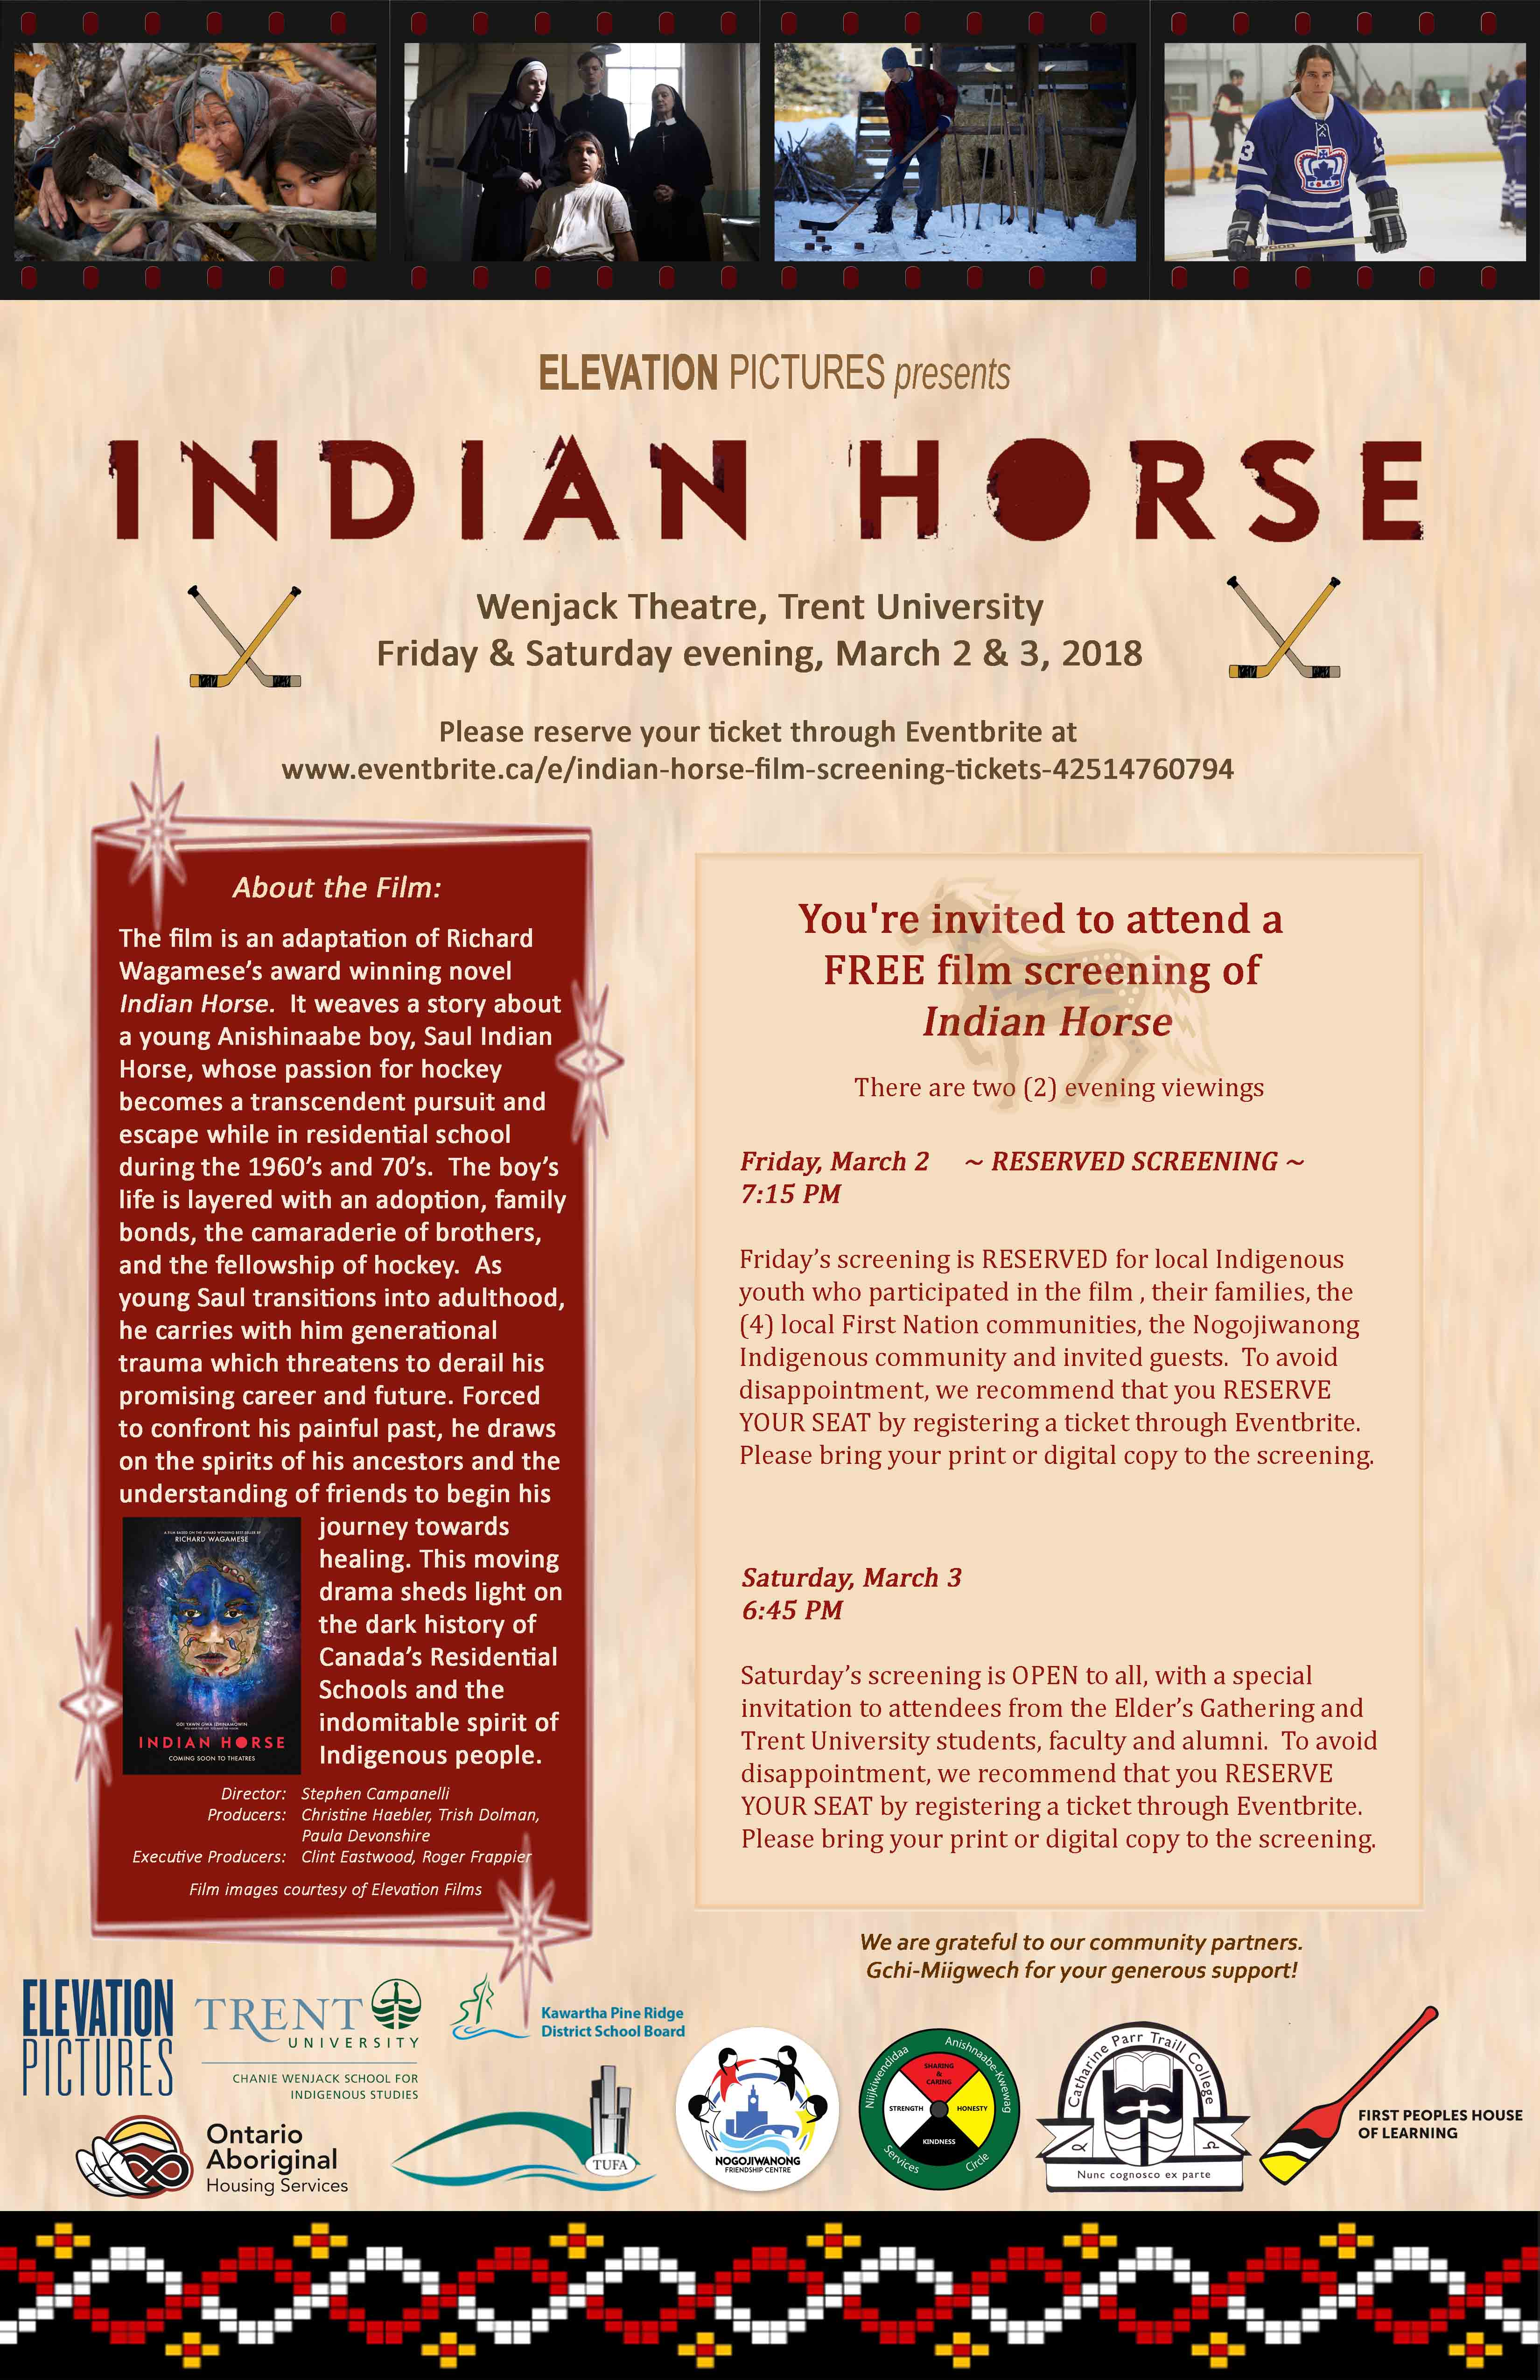 Poster for Indian Horse Screening at Wenjack Theatre